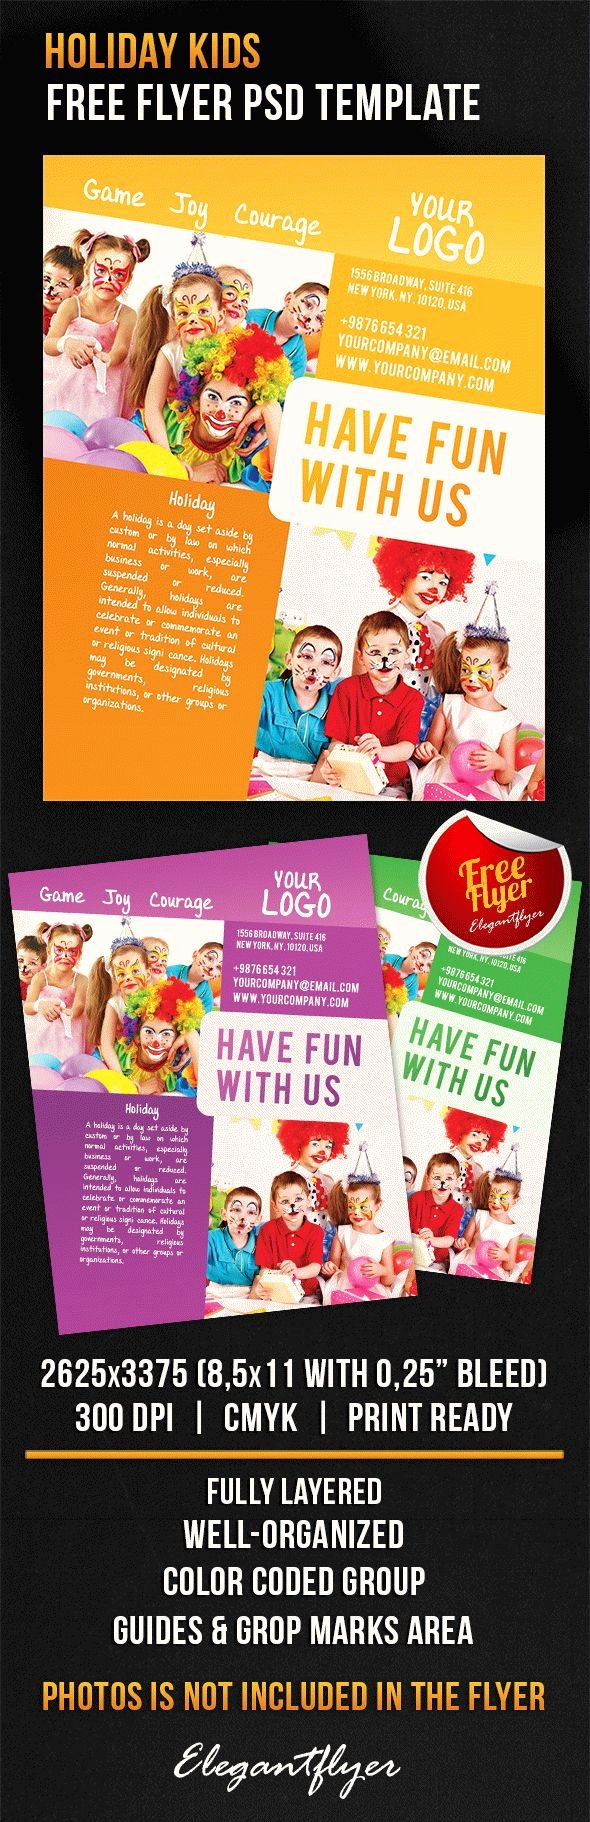 Free Holiday Kids – Free Flyer Psd Template Shop